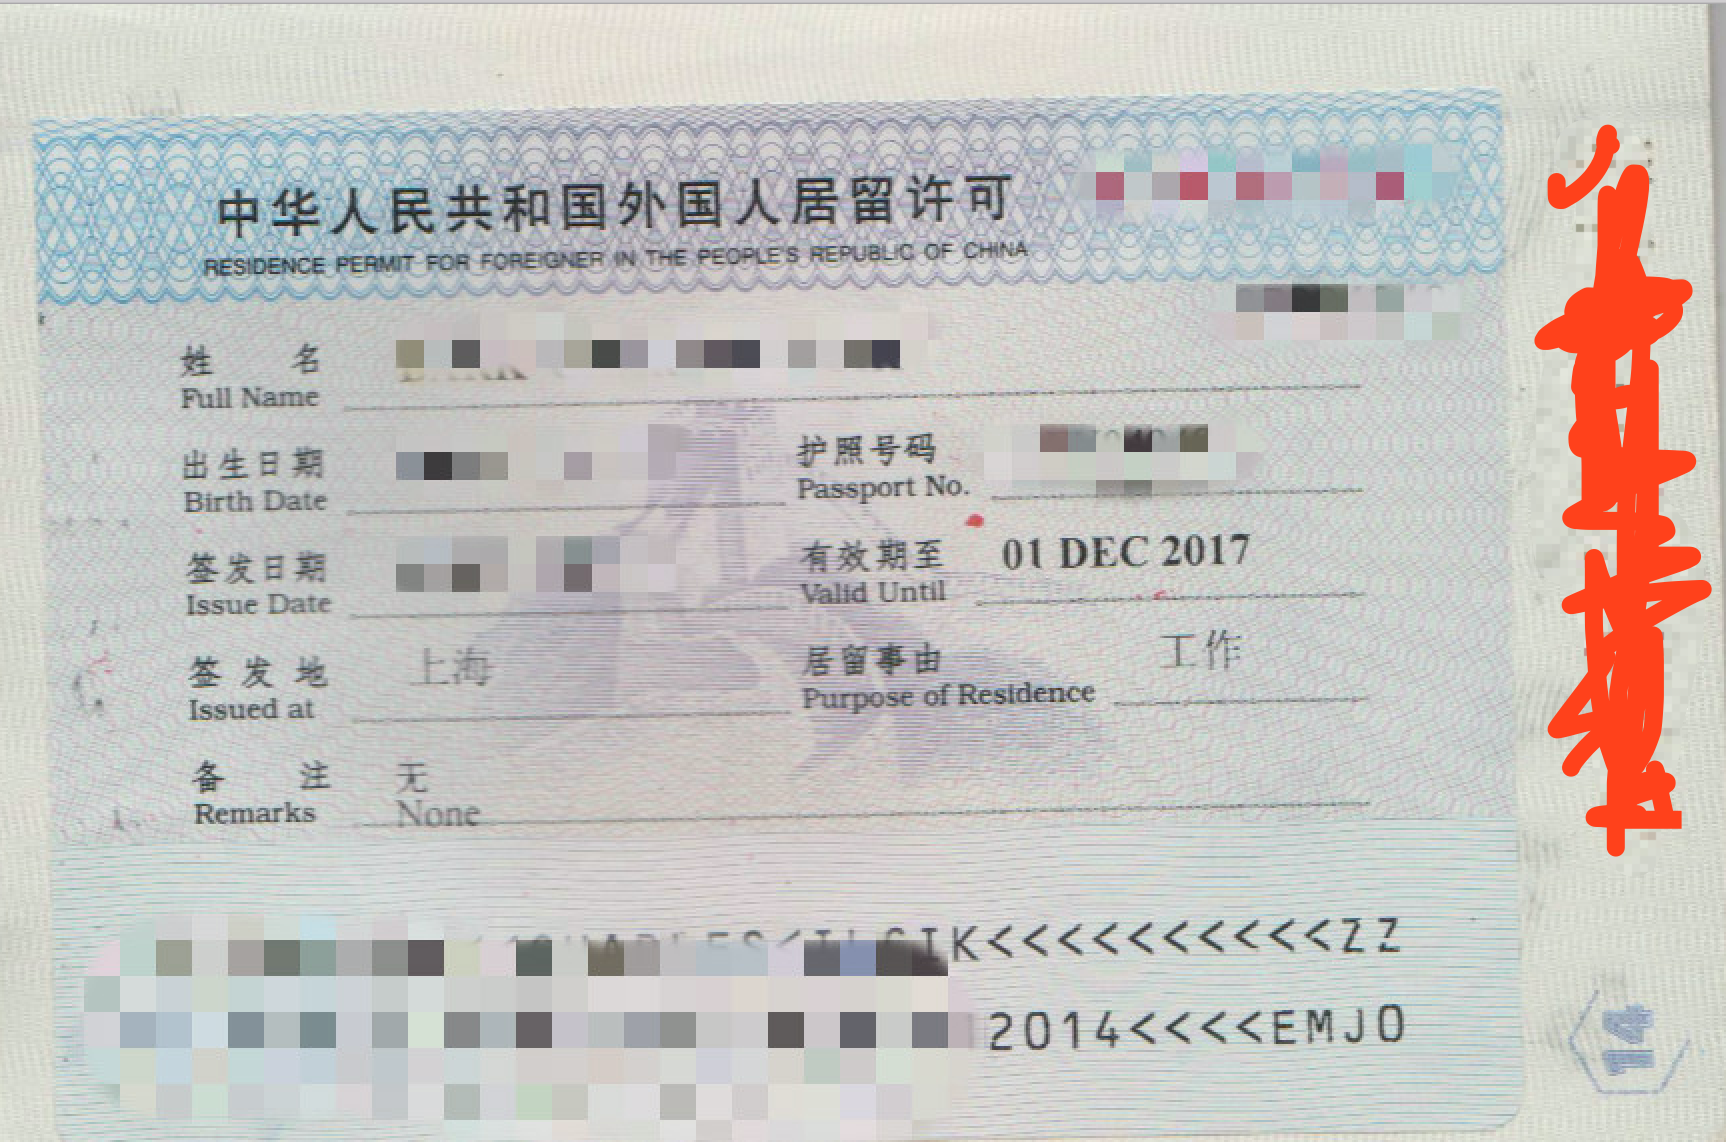 Residence permit for Foreinger